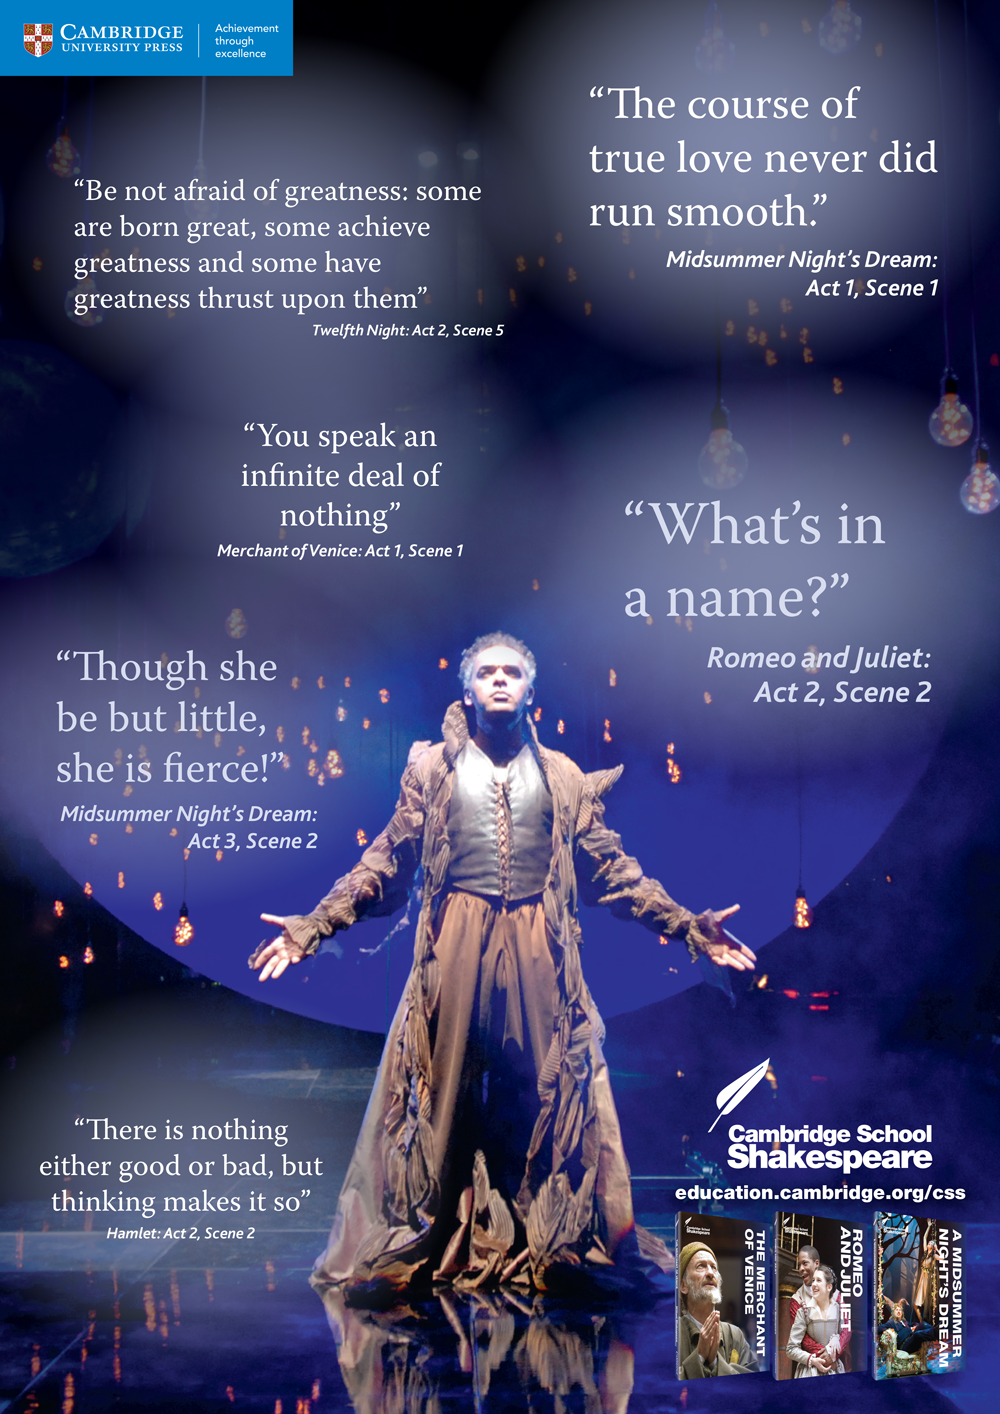 The second in our series of monthly 'Pin & Print' classroom posters! Follow the link to download this free Shakespeare quotes poster and print to A3 for use in your classroom. http://education.cambridge.org/media/1494820/cambridge-school-shakespeare-pinterest-quote-poster.pdf #cambridgeclassroom #schoolshakespeare #engchat